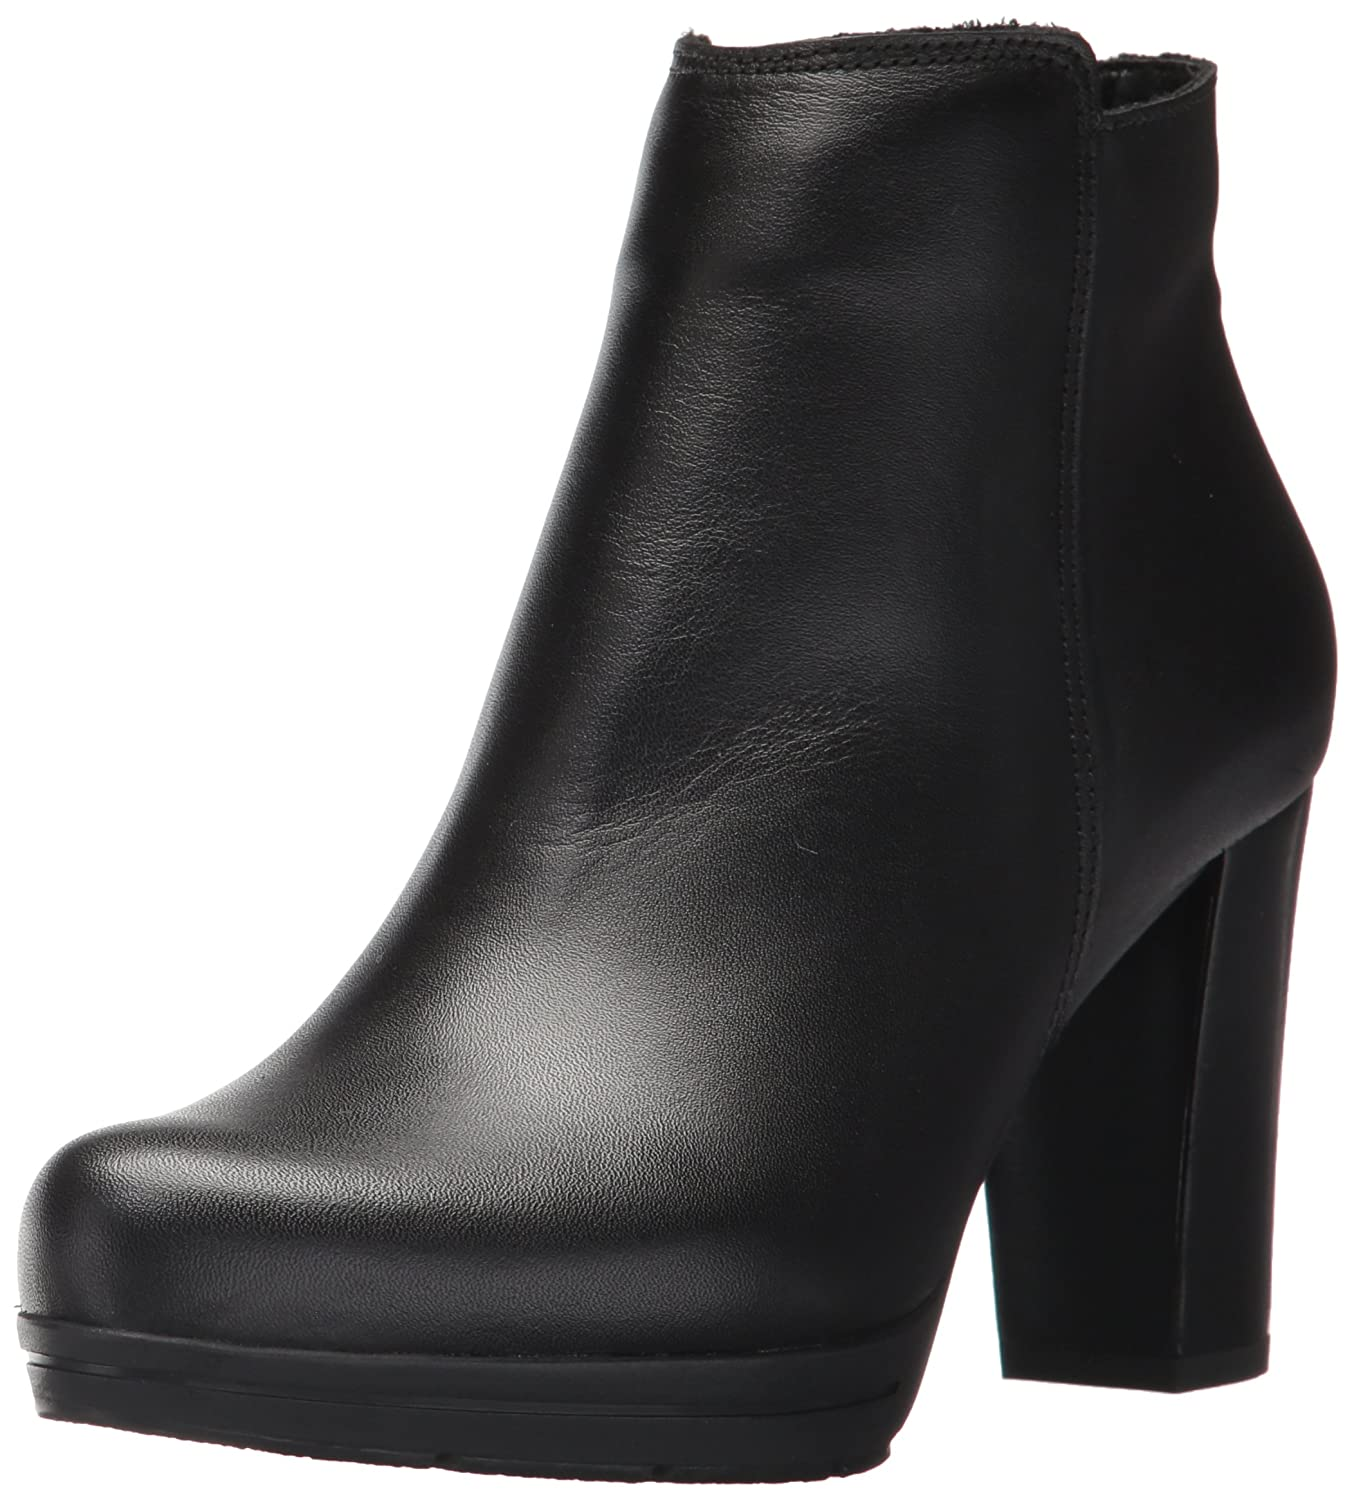 La Canadienne Women's Miko Leather B(M) Fashion Boot B01N6E5XSO 6 B(M) Leather US|Black Leather 43b6cb